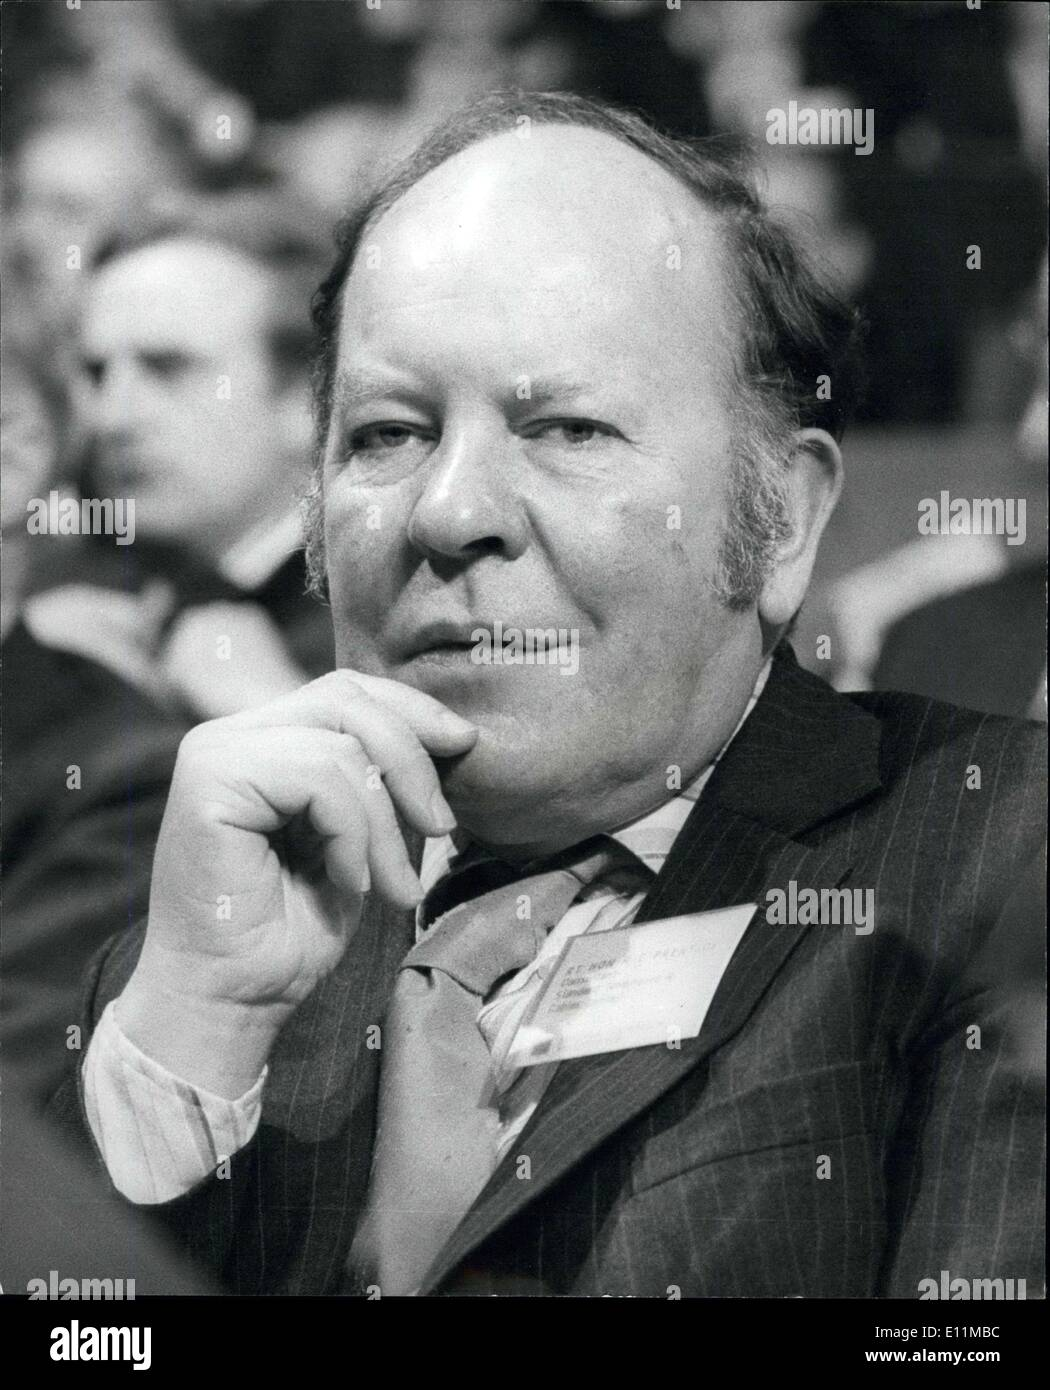 Nov. 07, 1978 - Conference of the Confederation of British Industry at Brighton: The Confederation of British Industry Conference opened at Brighton yesterday. Photo shows Mr. Reg Prentice, MP for Newham East at the CBI conference yesterday at Brighton. - Stock Image